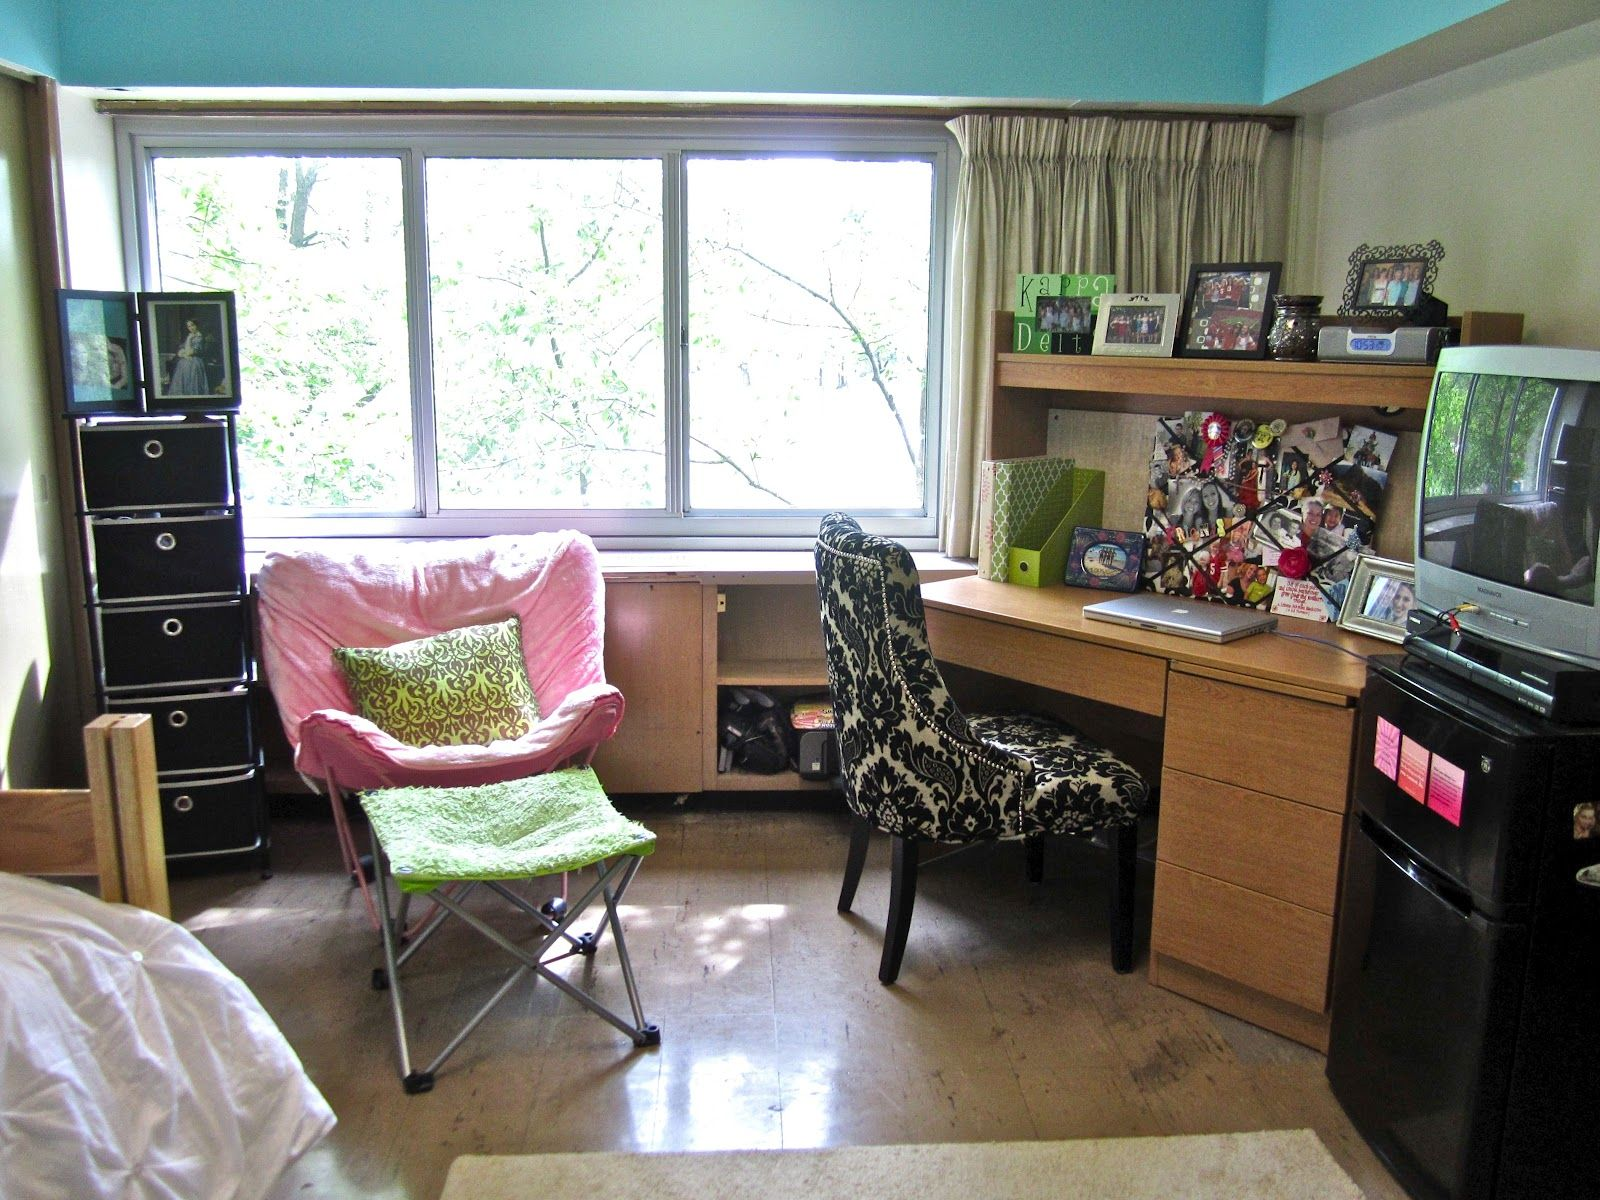 Cool Dorm Furniture Got Clunky Dorm Furniture? Add Touches Of Colorful Prints